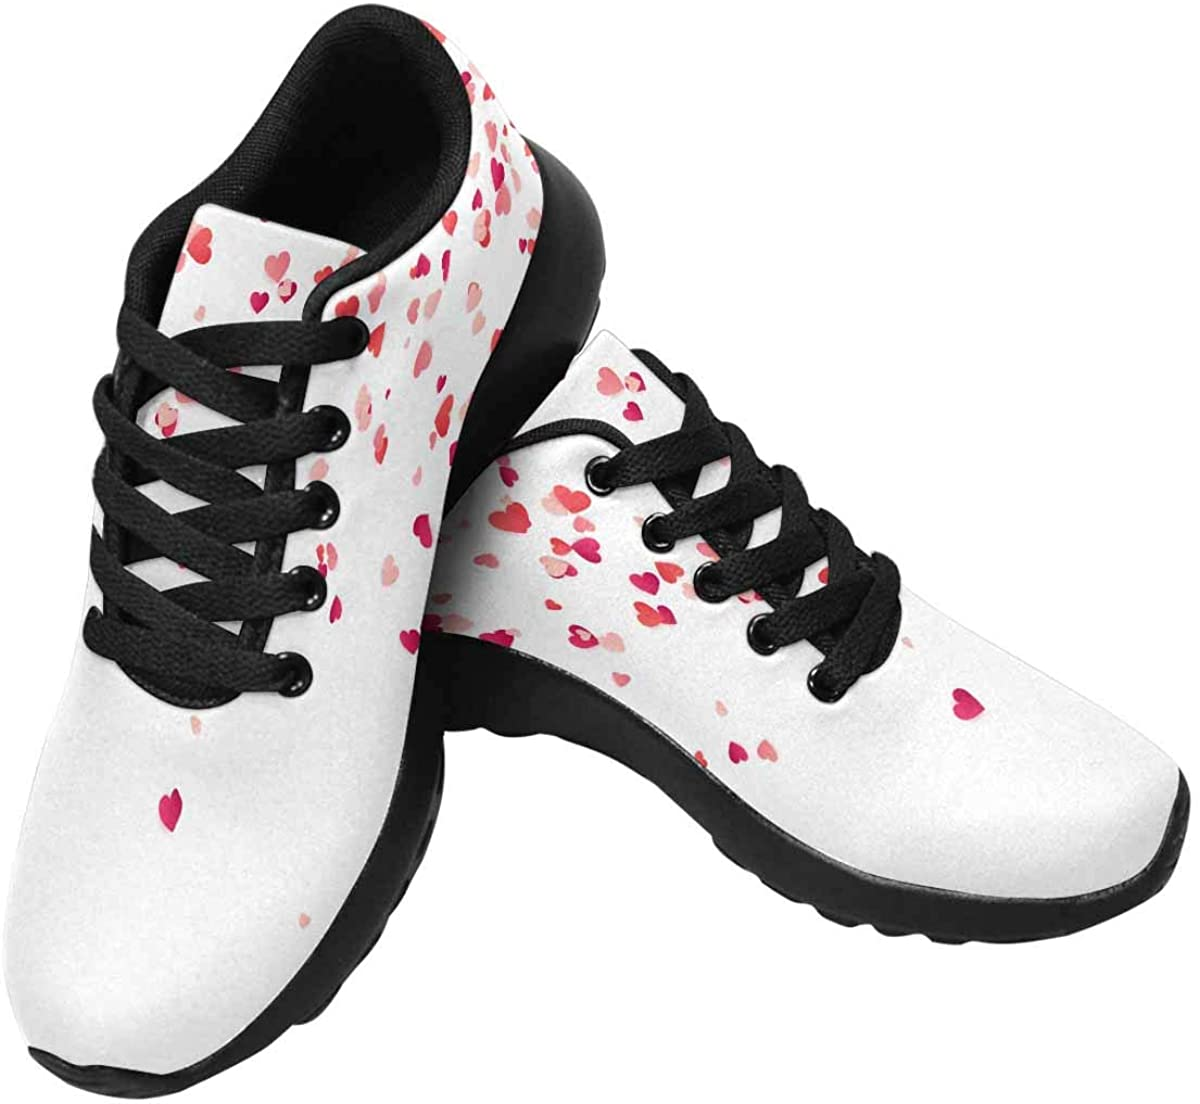 InterestPrint Valentines, Red and Pink Hearts Women's Running Shoes - Casual Breathable Athletic Tennis Sneakers